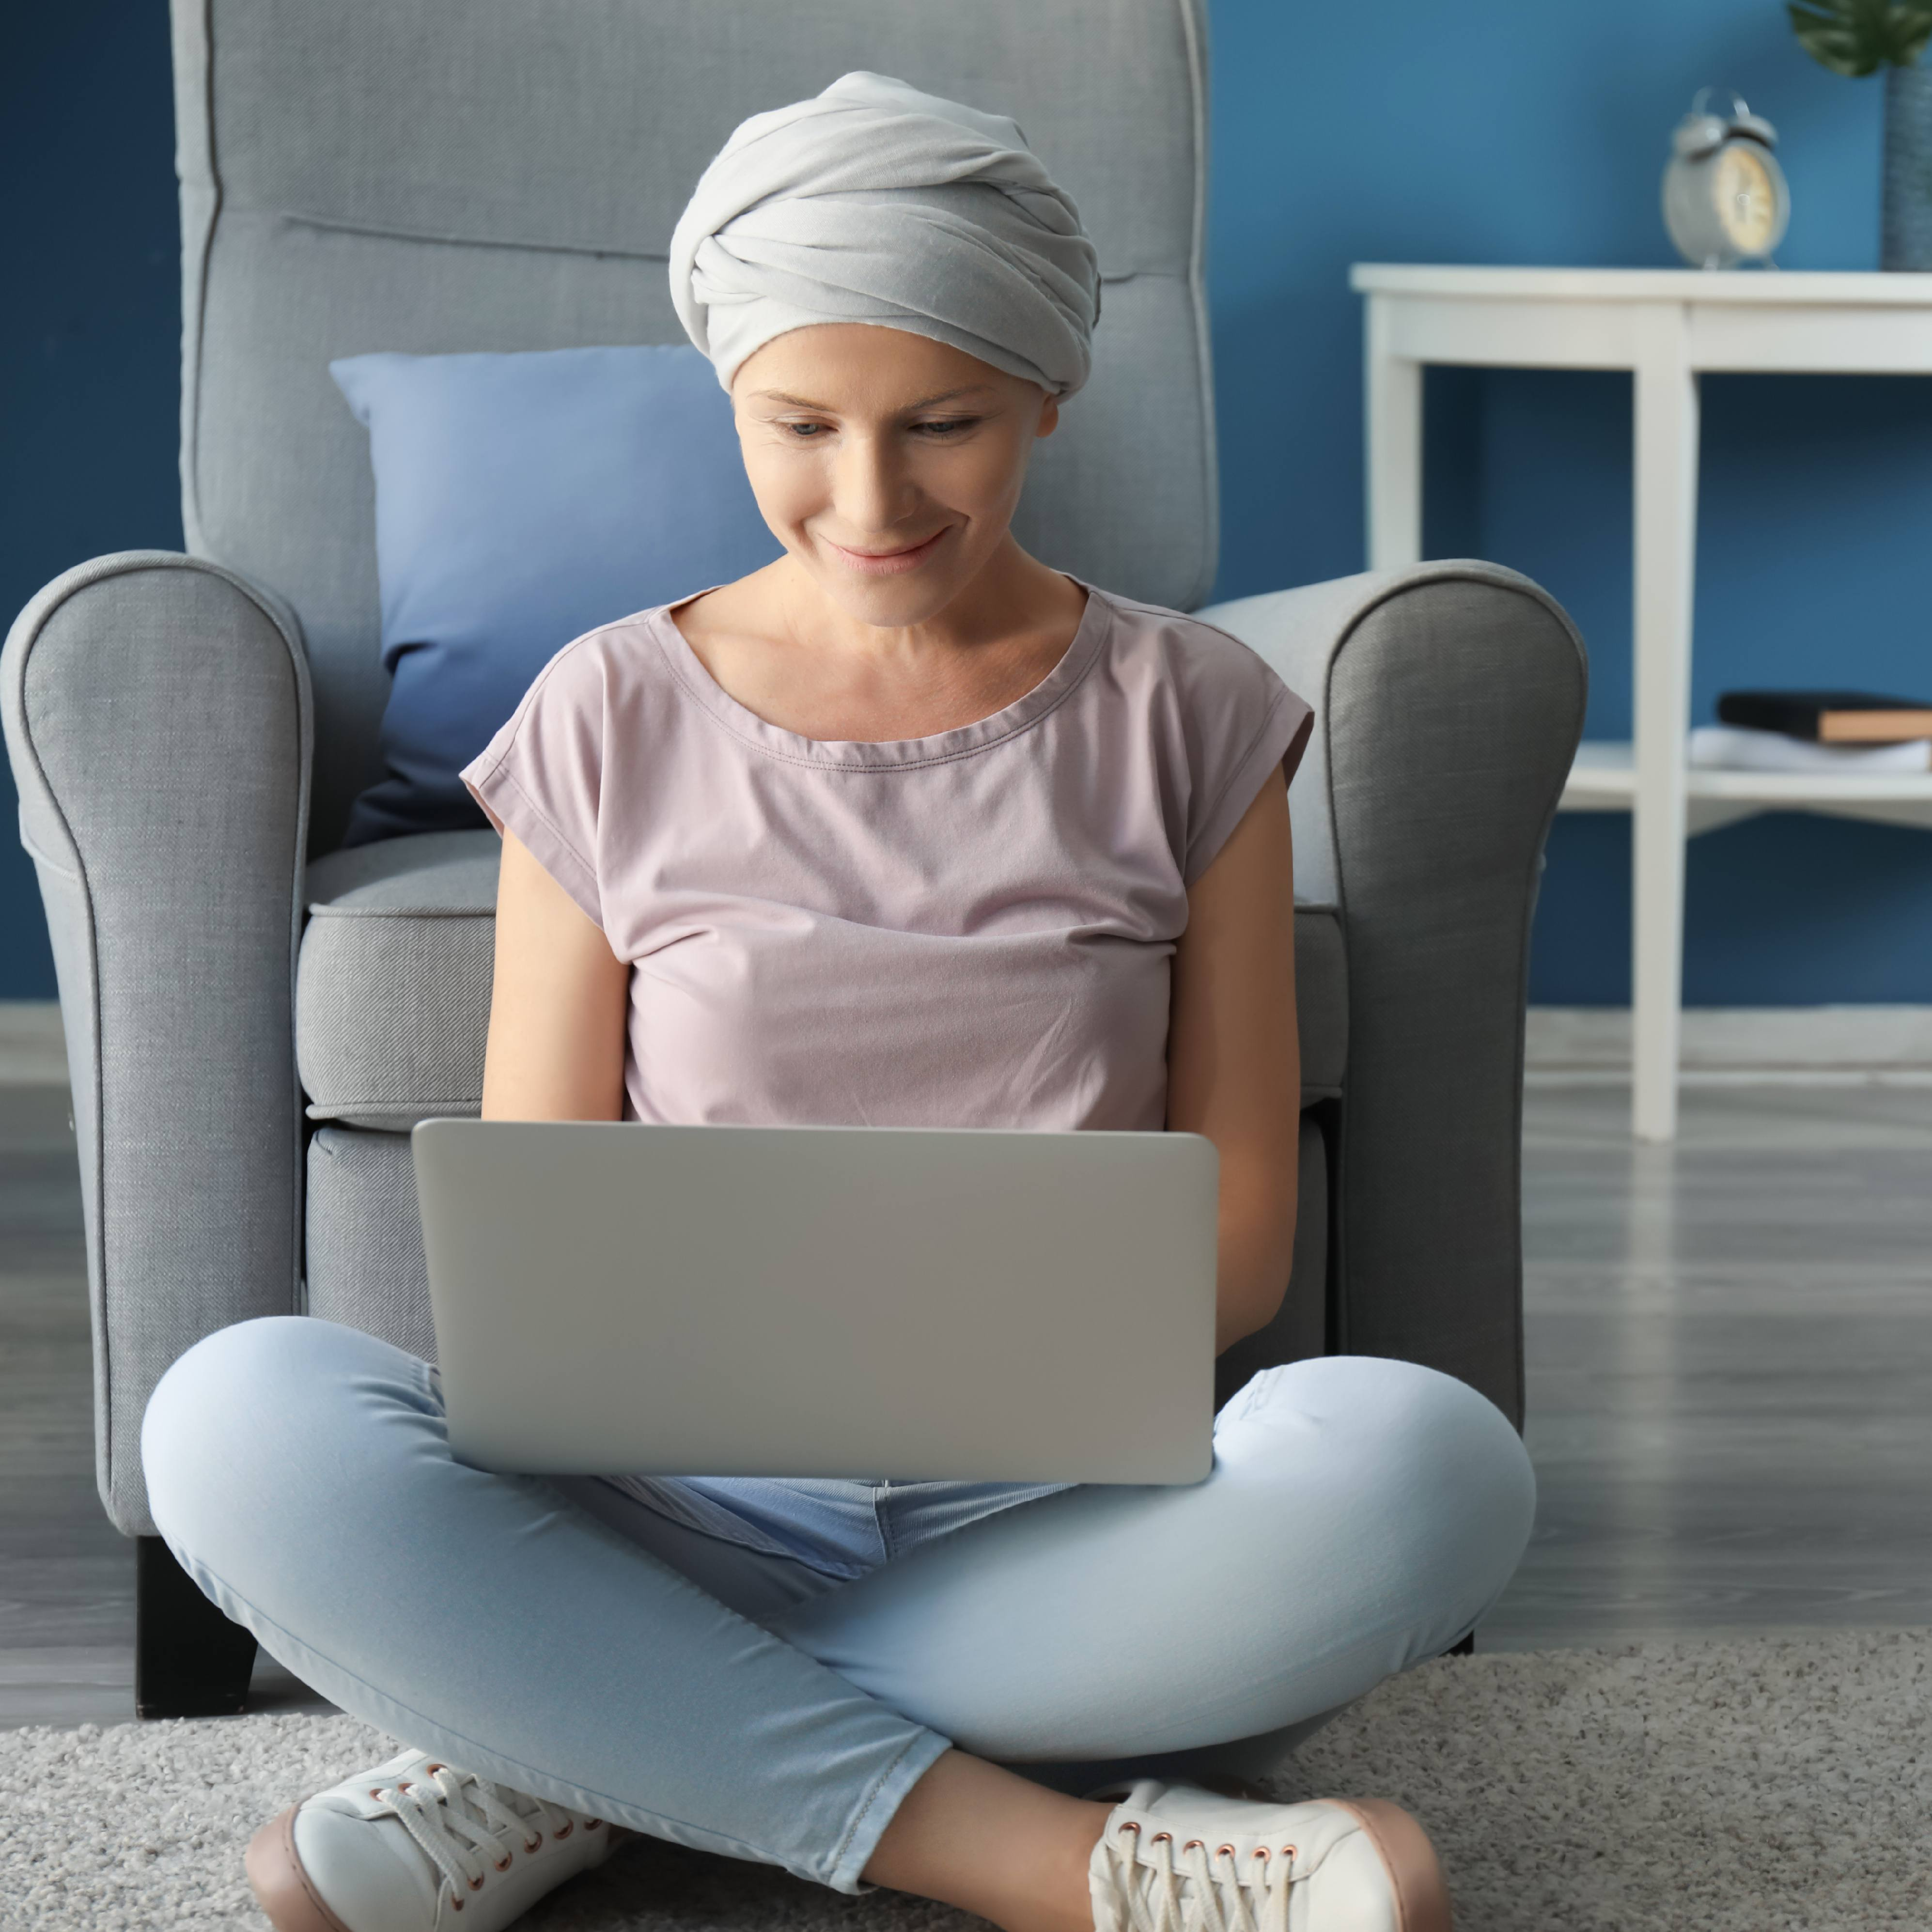 a young white woman wearing a head scarf and sitting on the floor in her home, smiling and working on a computer laptop